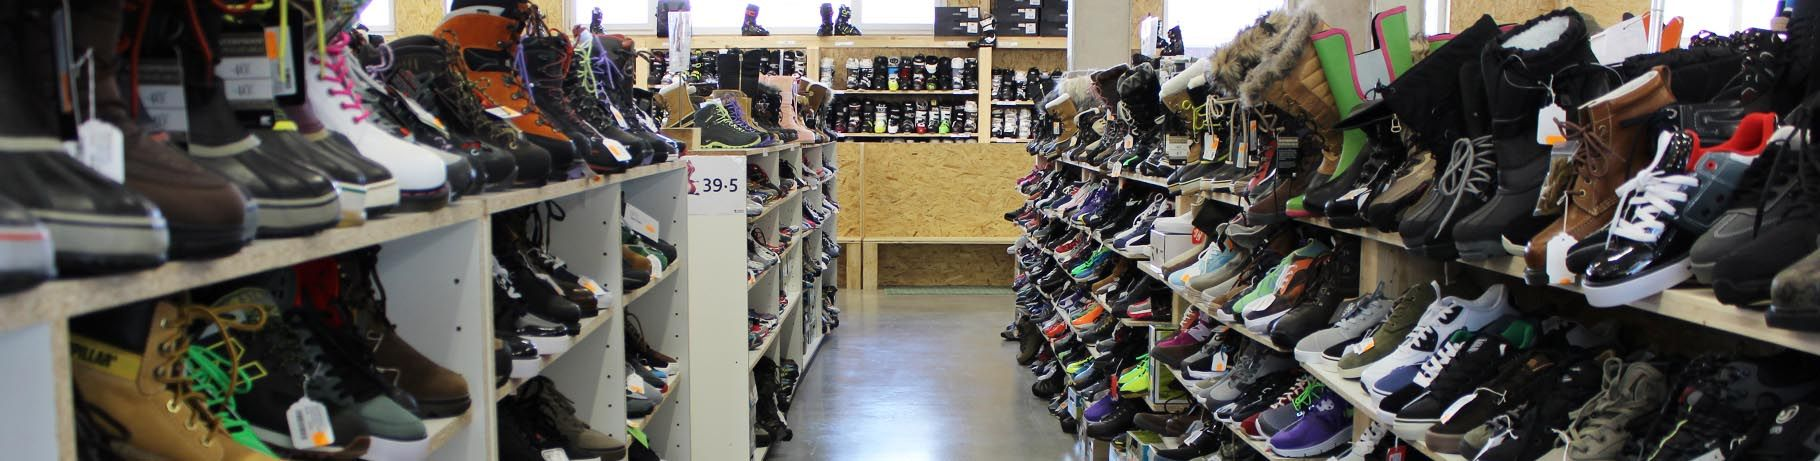 magasin chaussures sport crazyprices